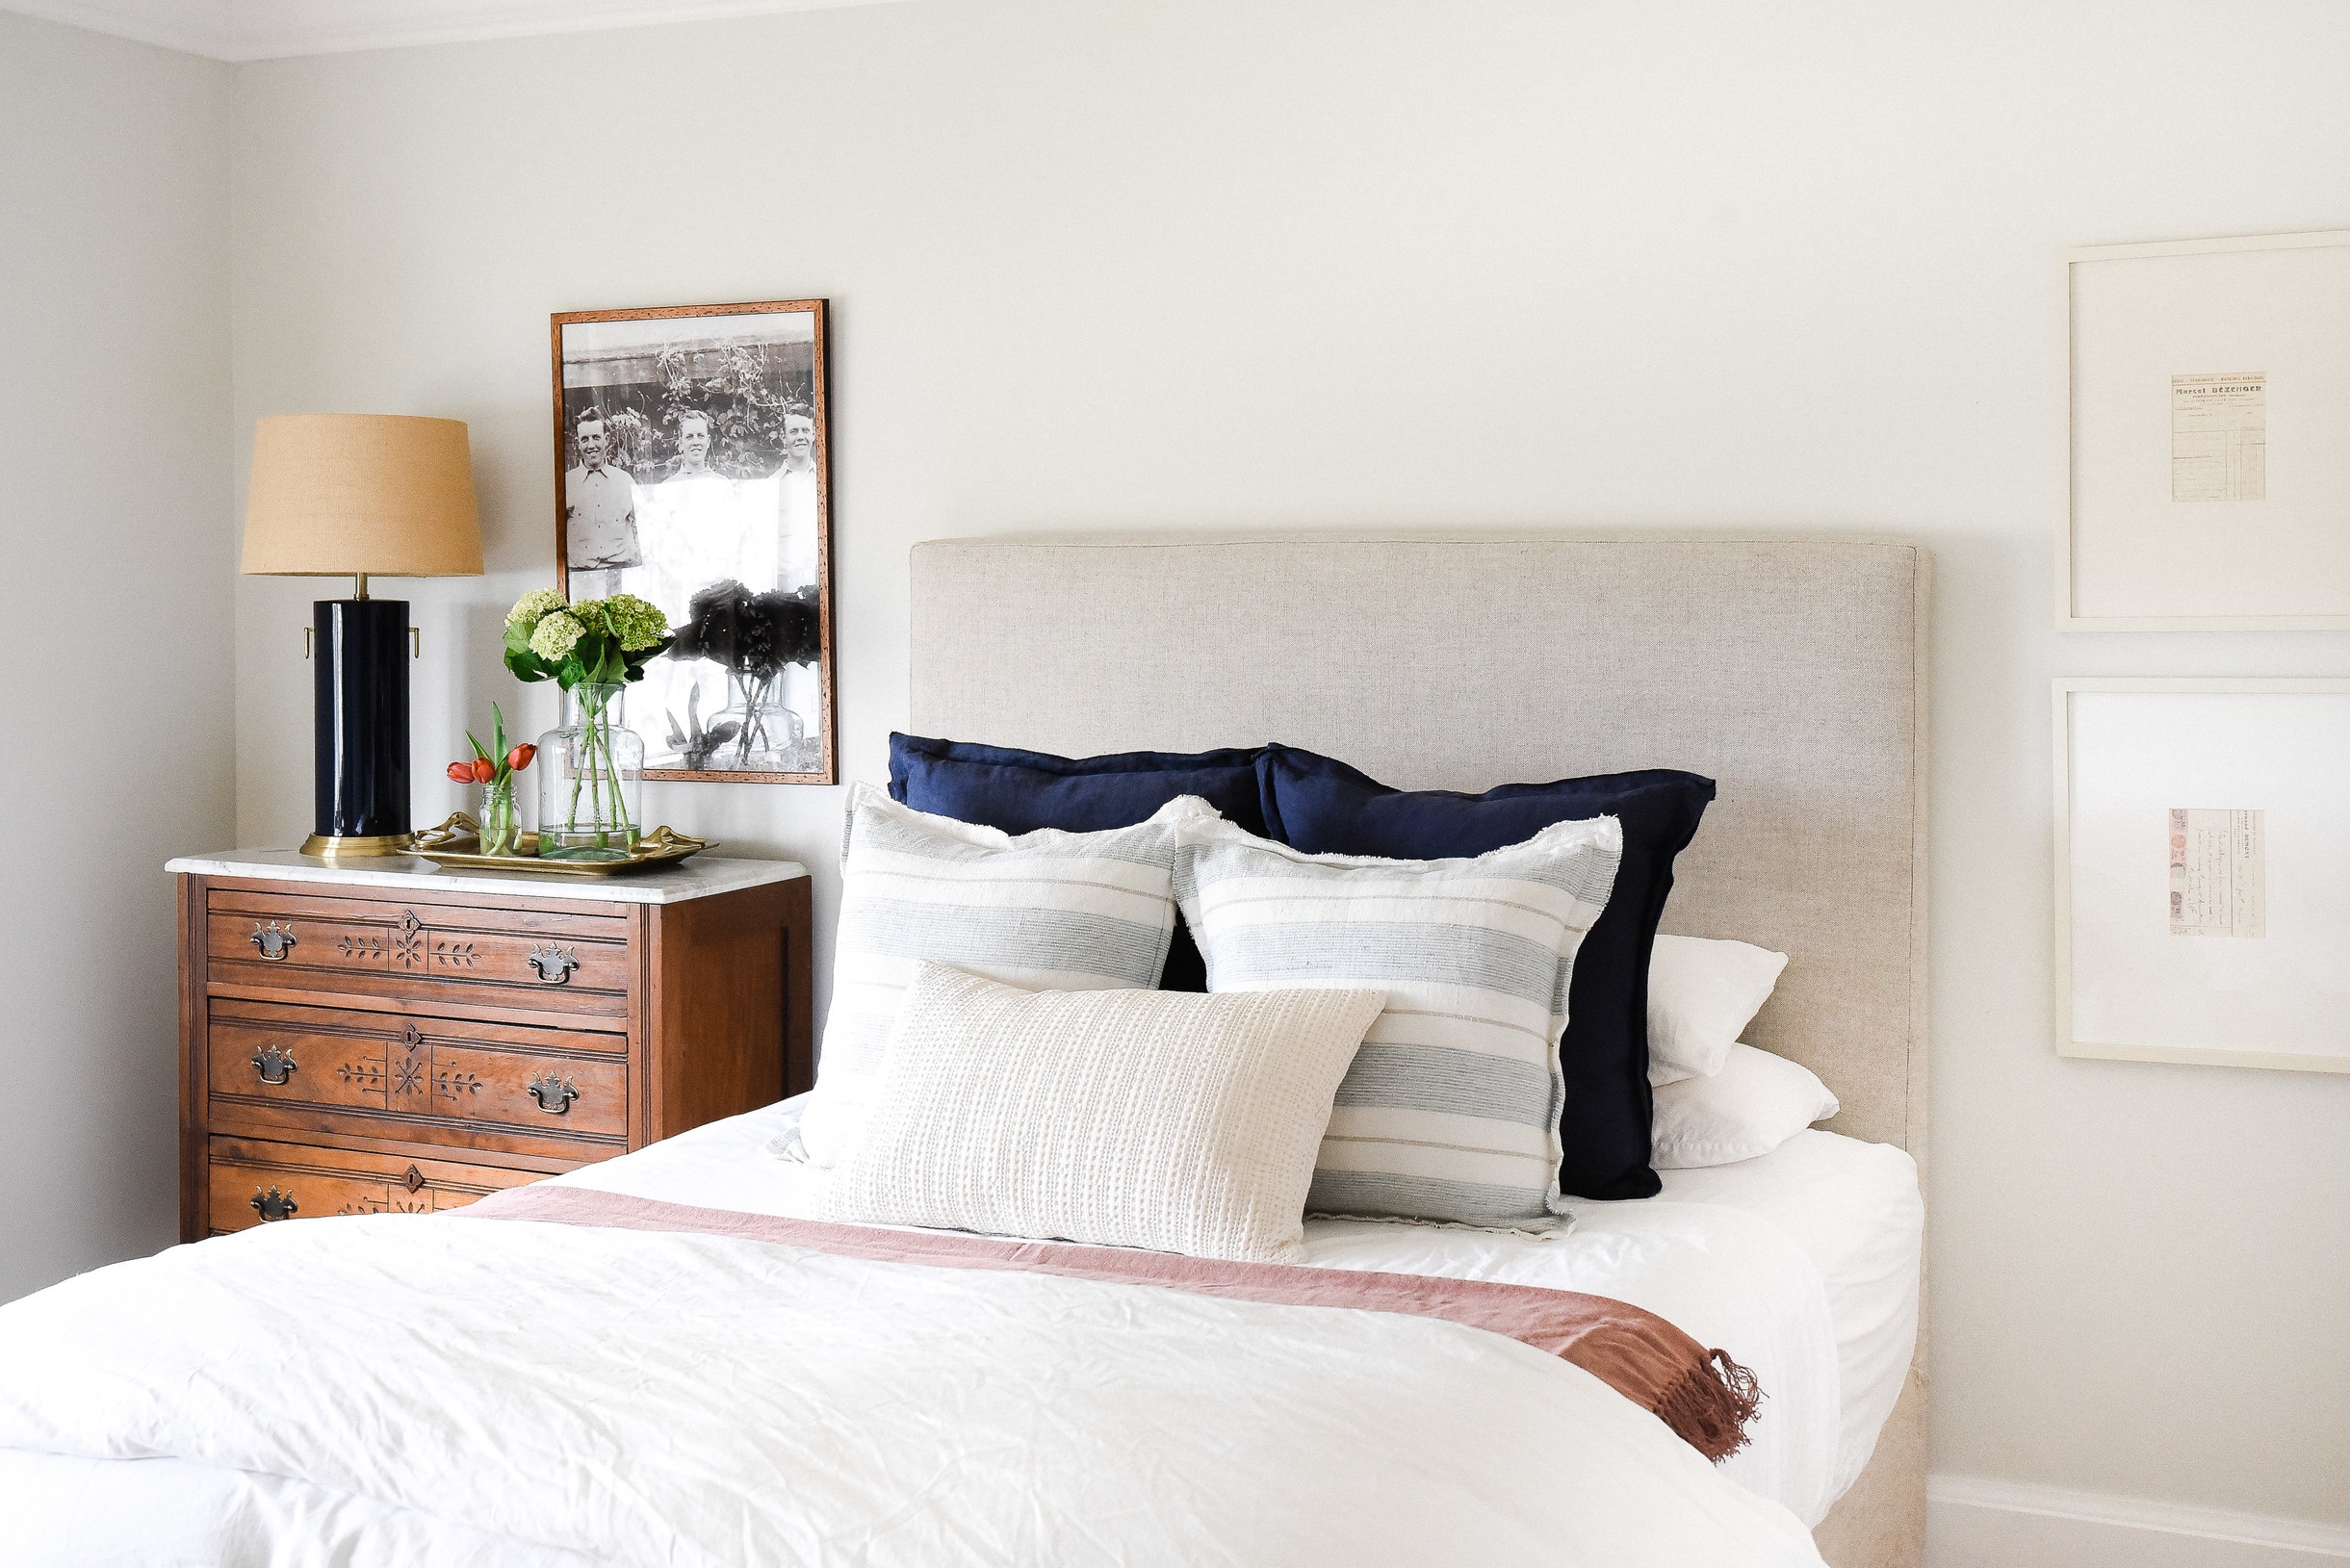 Create a farmhouse bedroom by combining antique farmhouse furniture with modern farmhouse decor! #farmhousedecor #farmhousebedroom boxwoodavenue.com